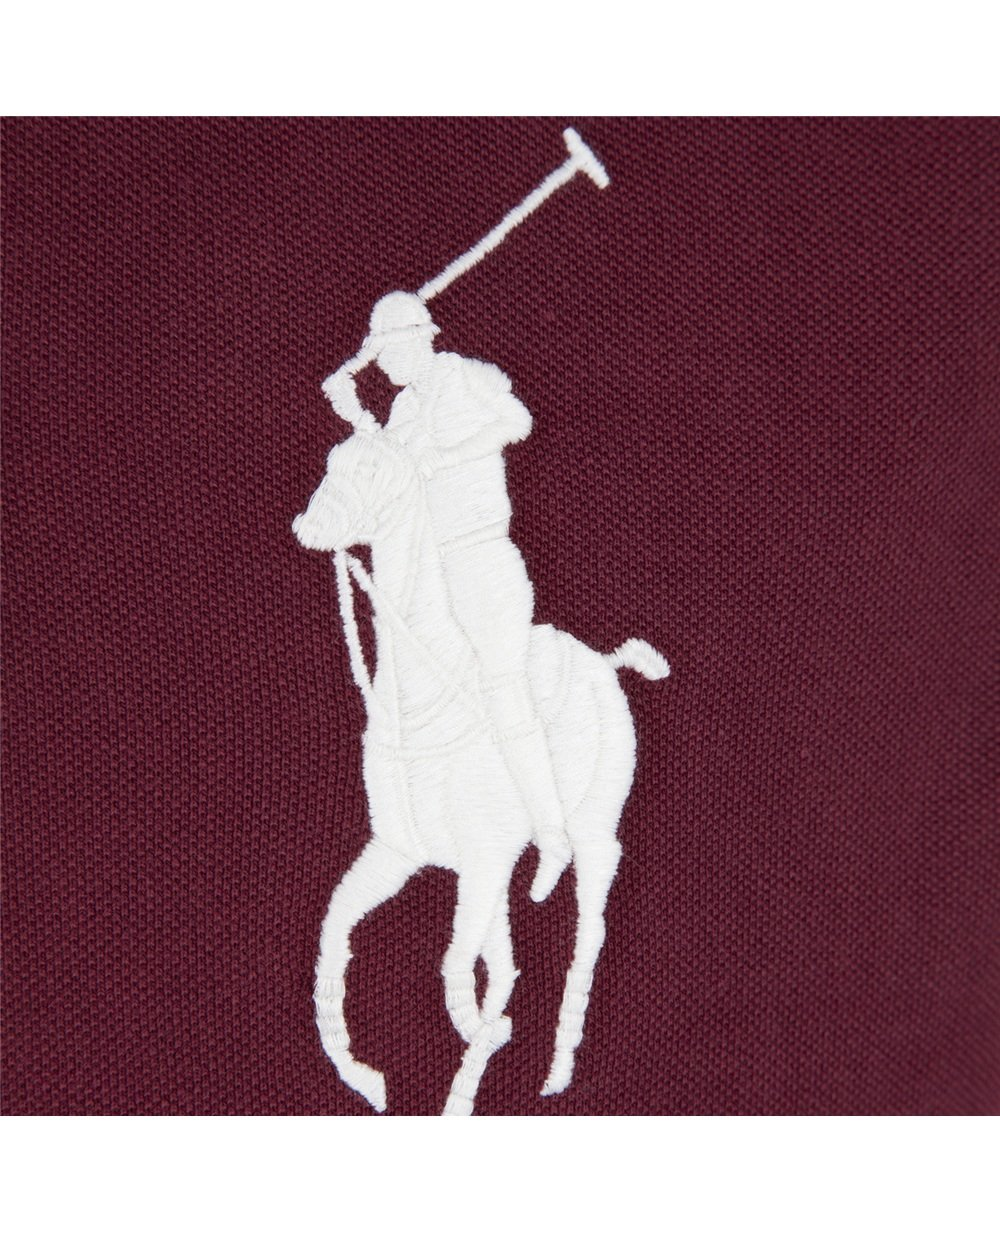 Ralph Lauren Logo Wallpaper Polo ralph lauren logo 1000x1233